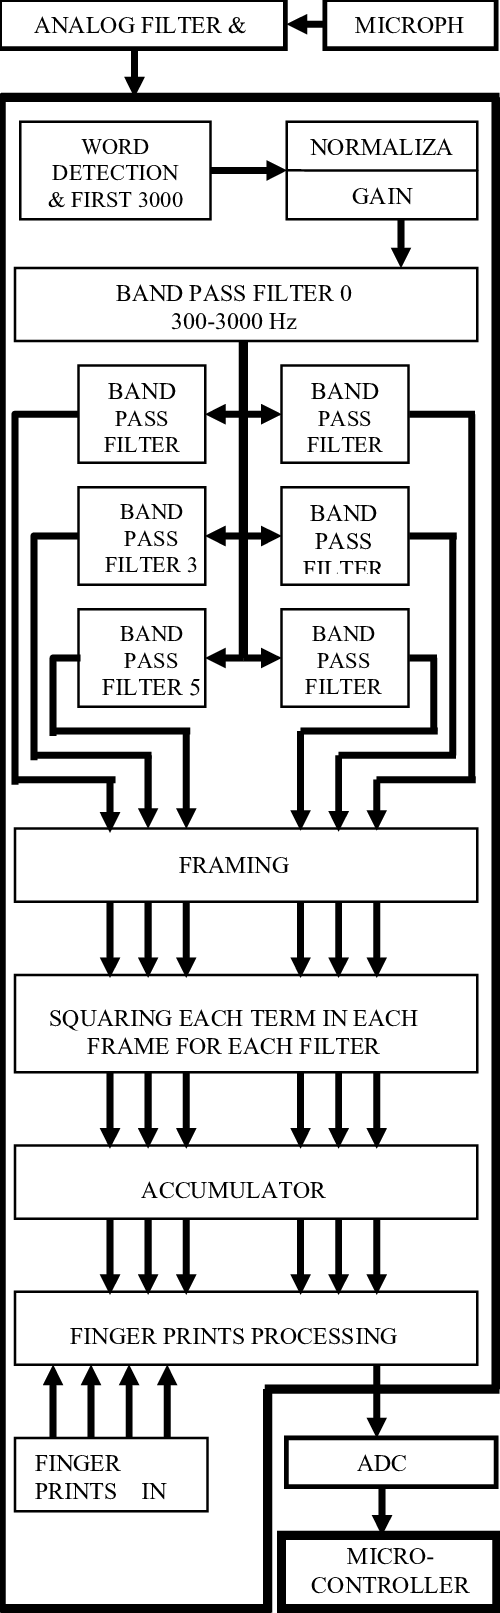 hight resolution of block diagram representing speech recognition system